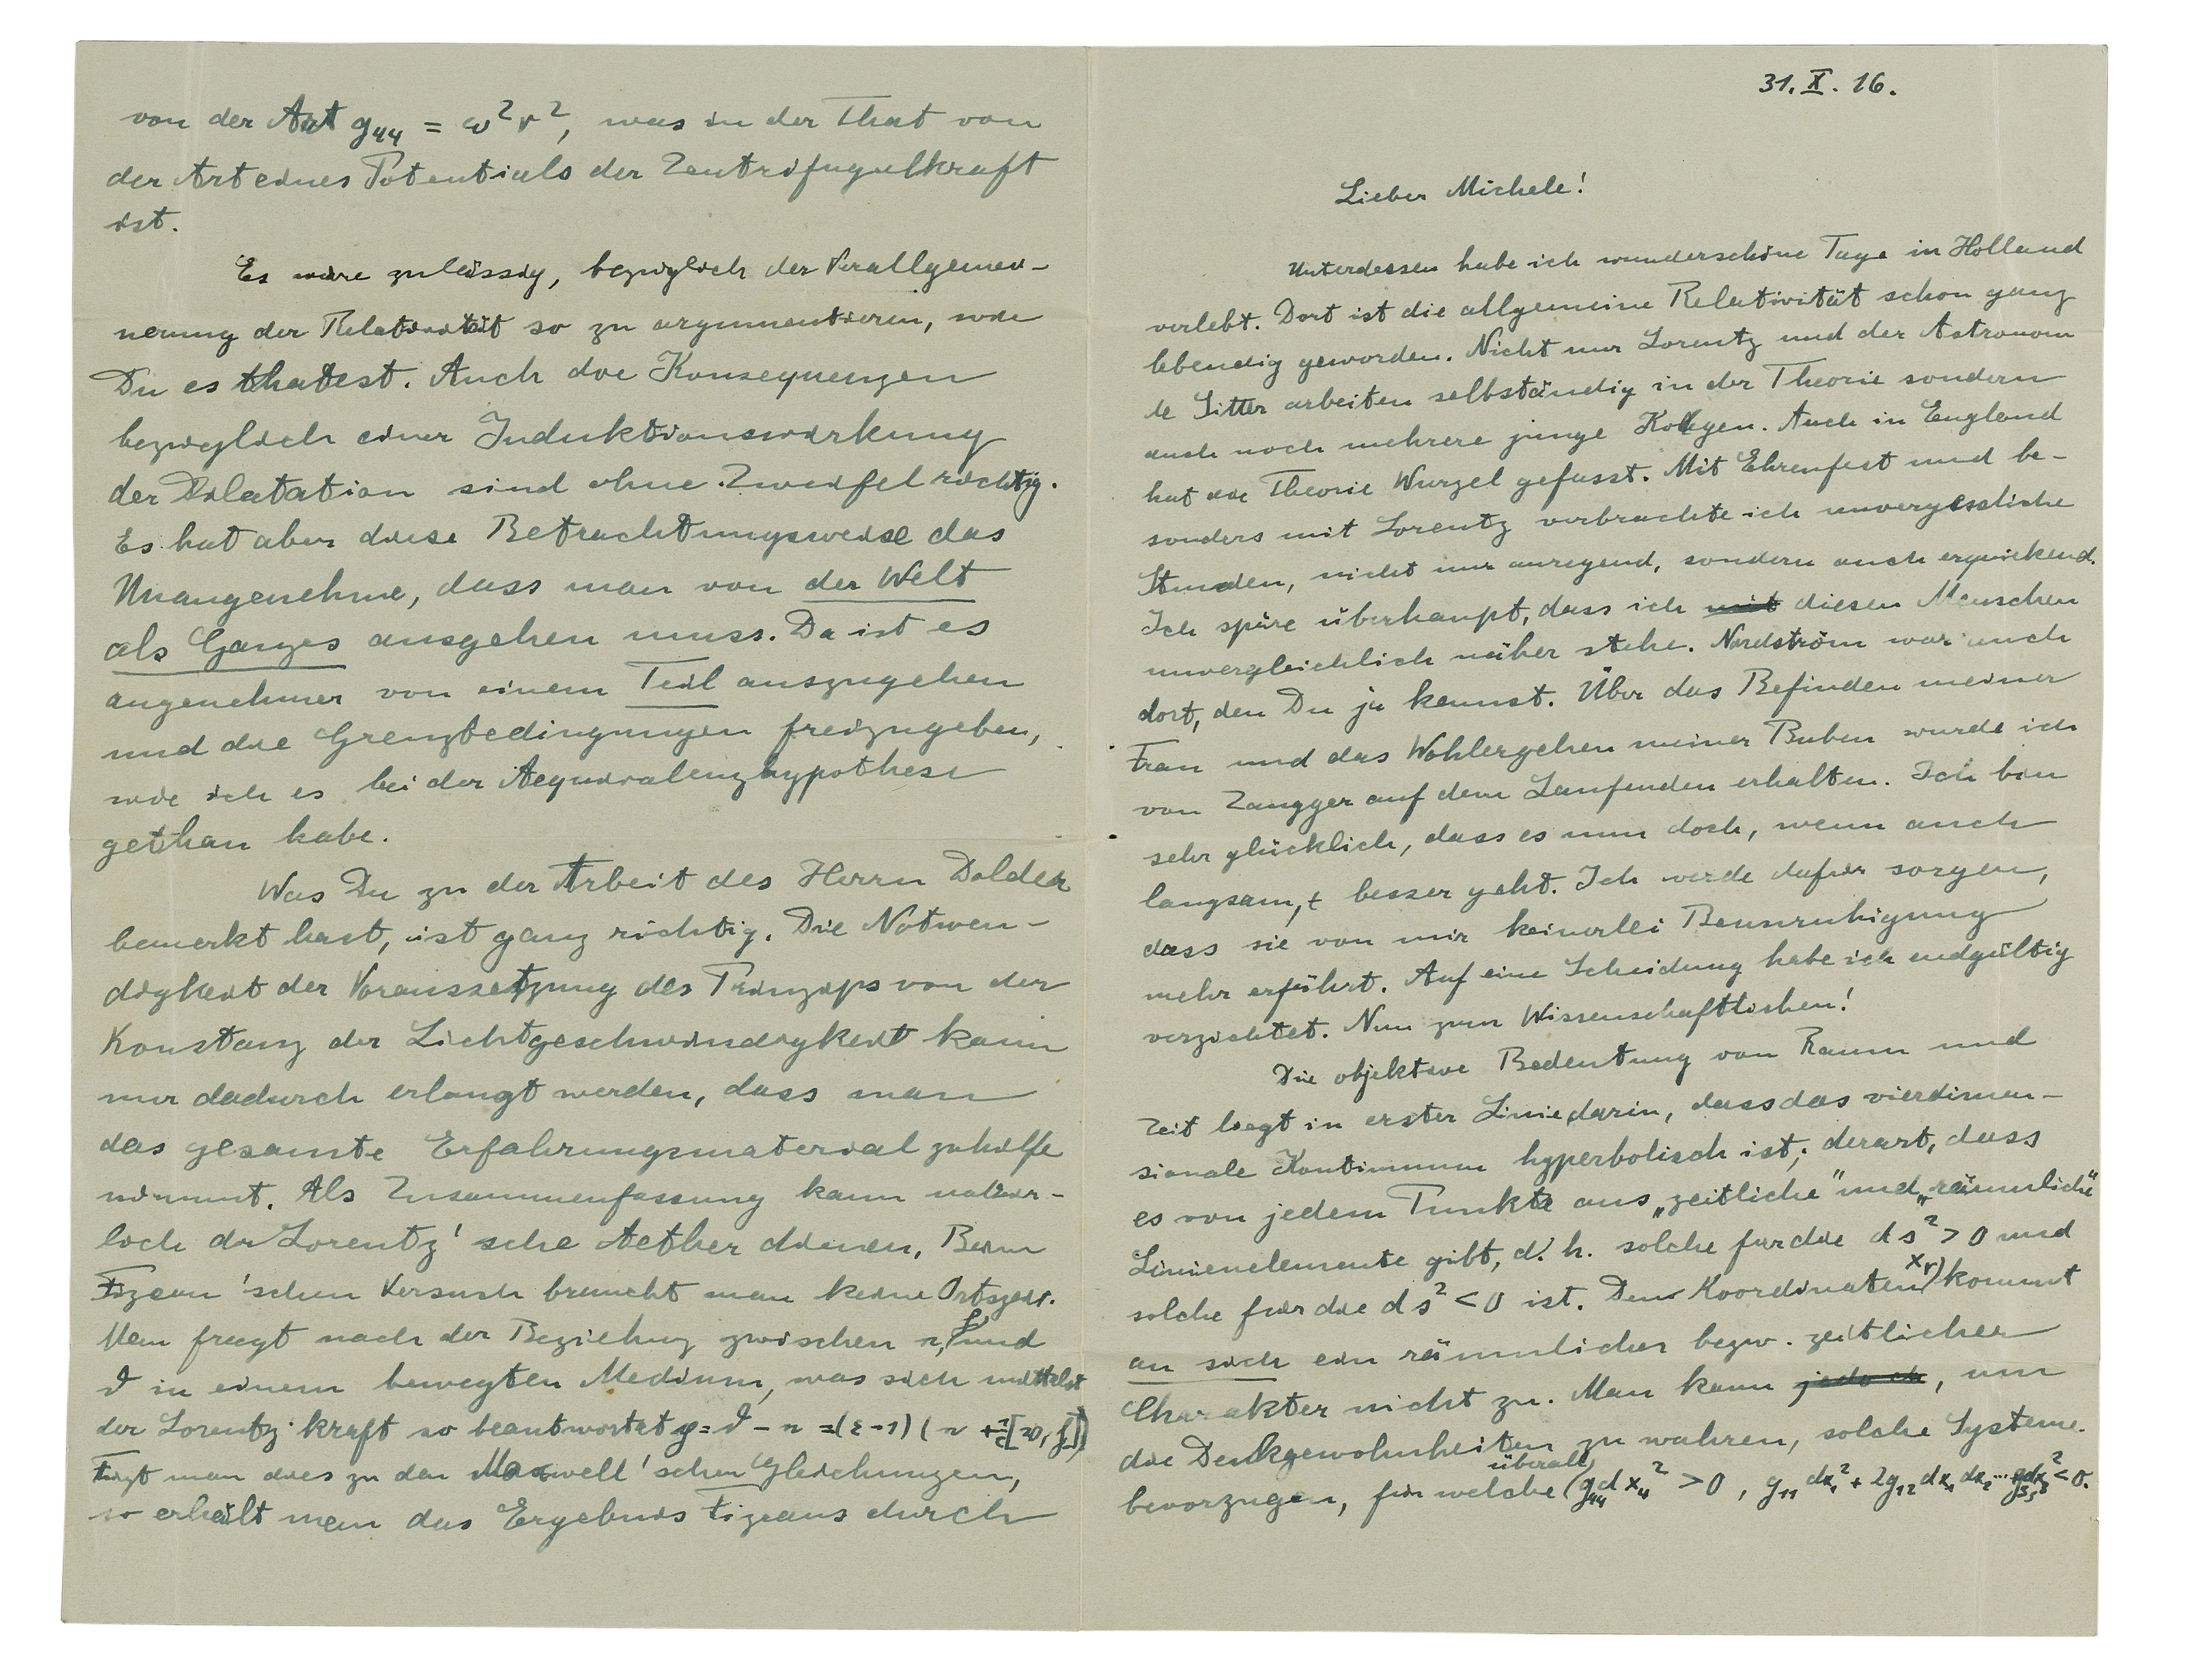 EINSTEIN, Albert (1879-1955). Autograph letter signed ('Albert') to Michele Besso, [Berlin], 31 October 1916.